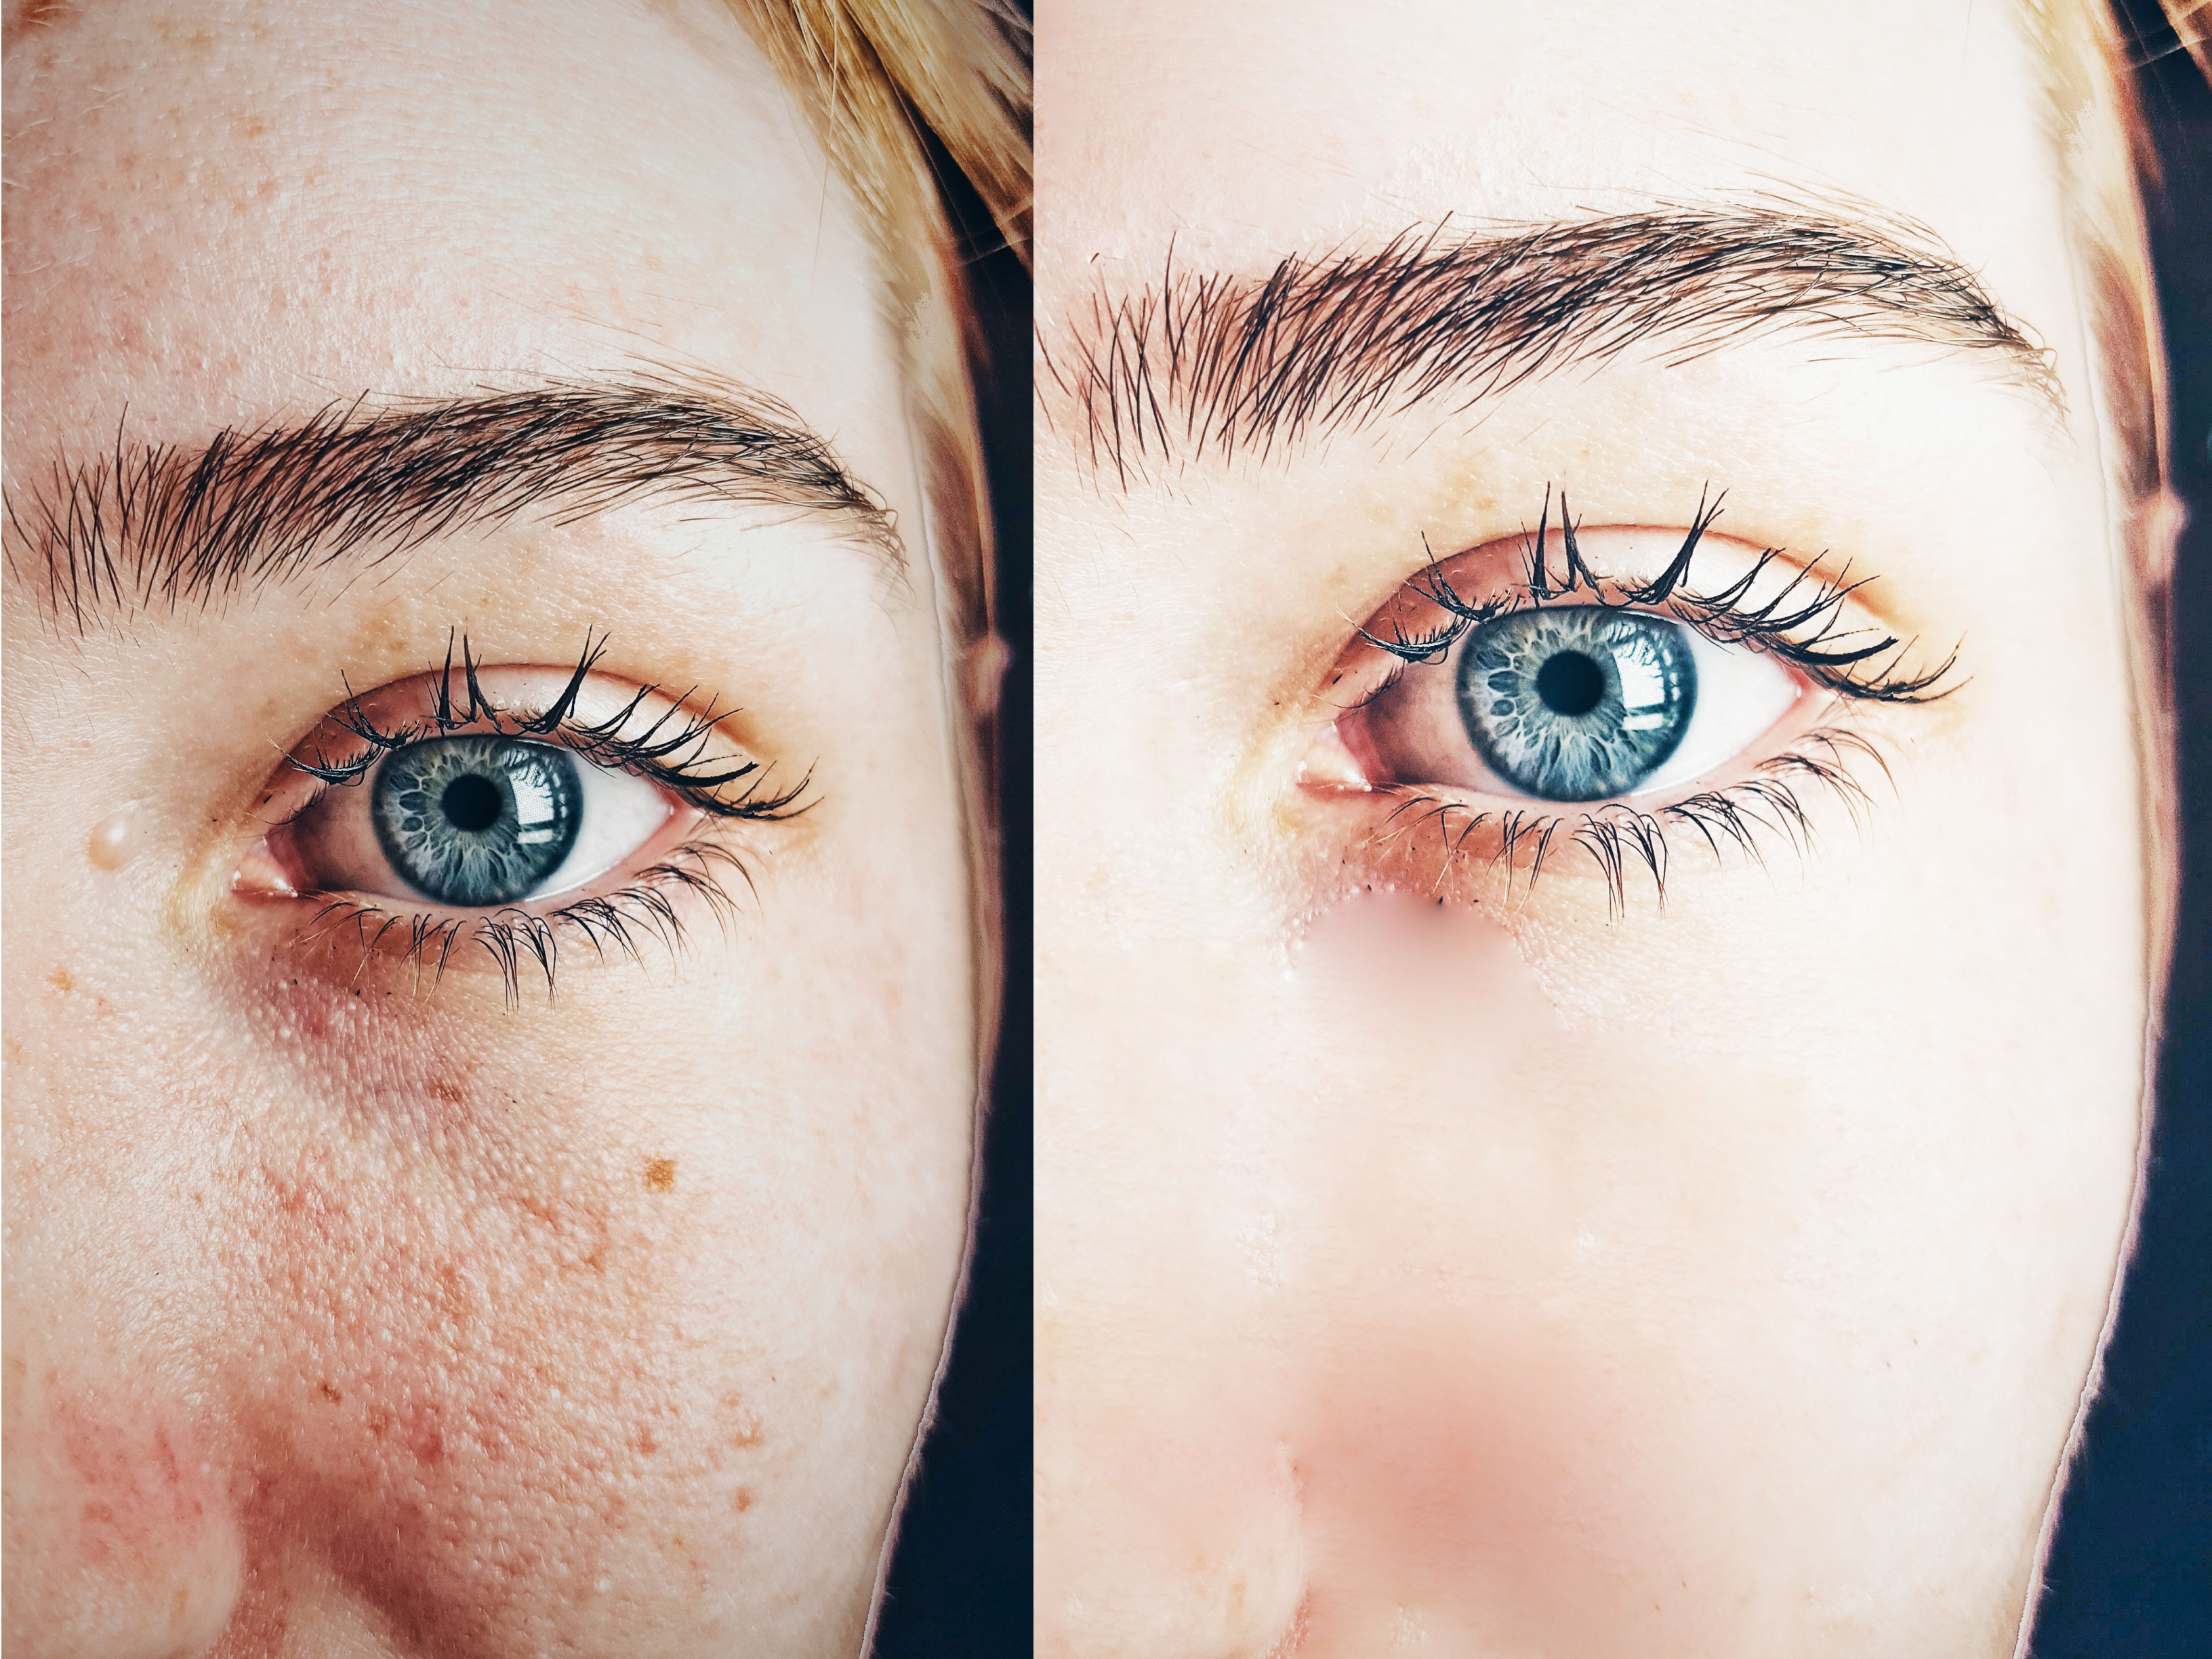 I will do Photoshhop editing and face retouching a